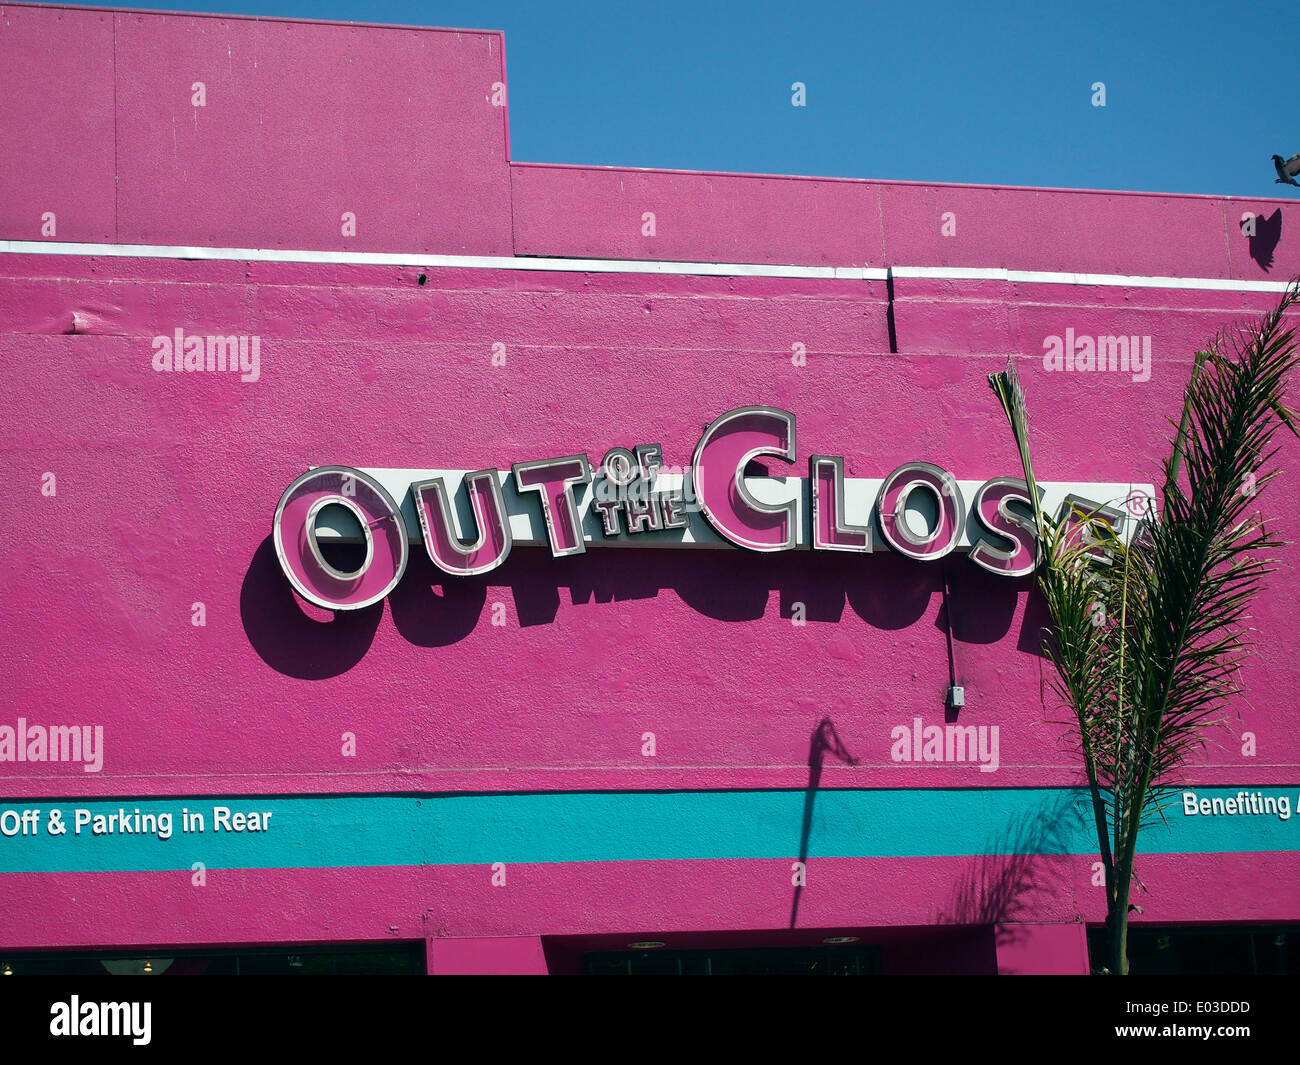 Out of the Closet store on Polk Street in San Francisco, California, - Stock Image